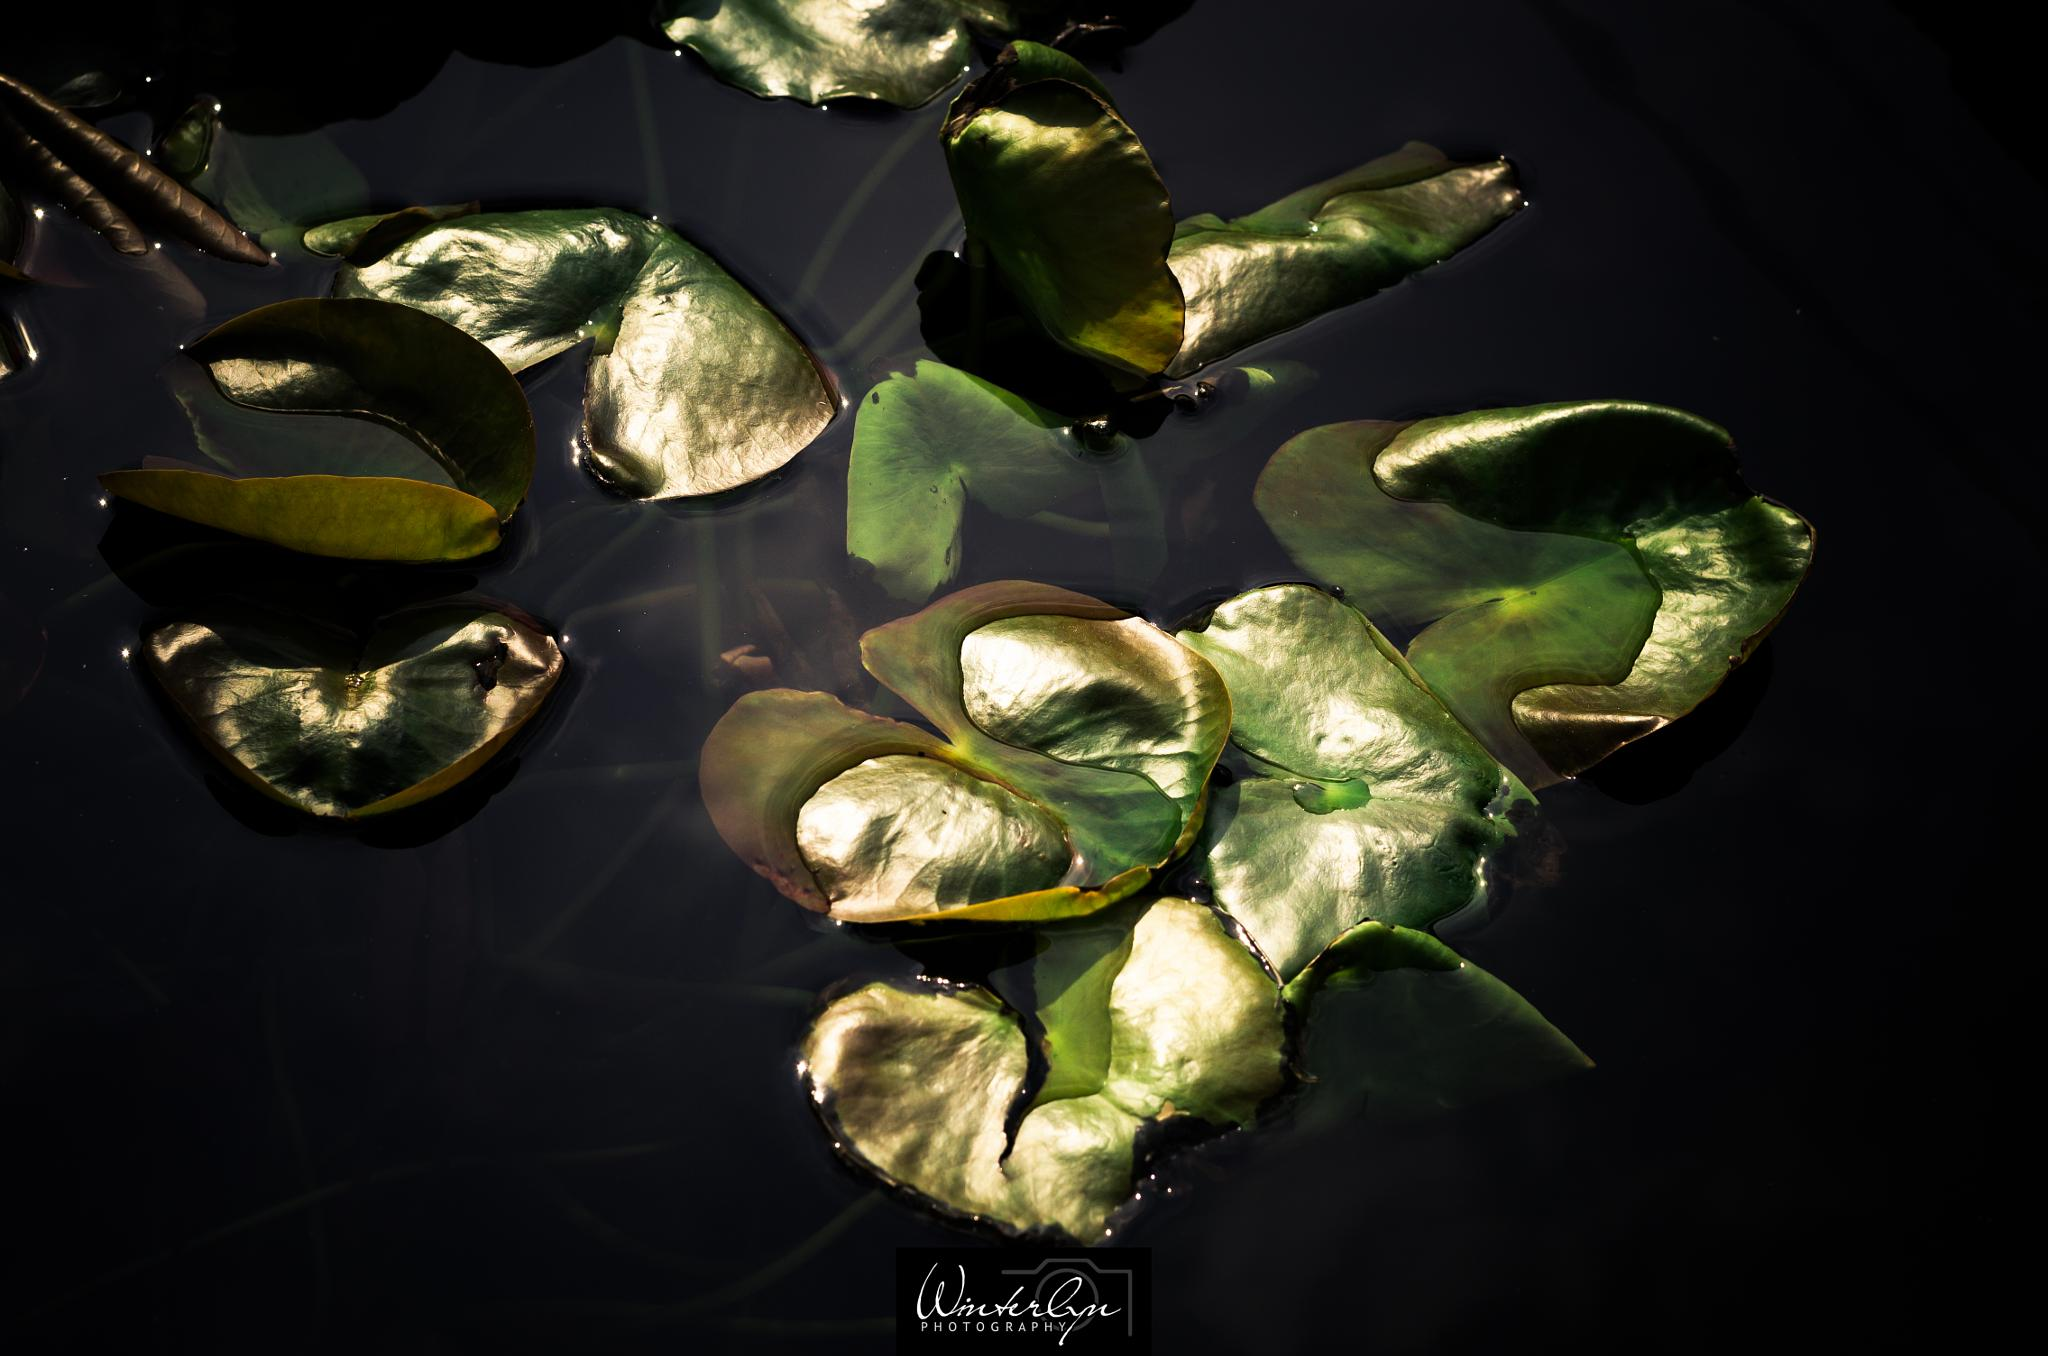 Untitled by Winterlyn Photography